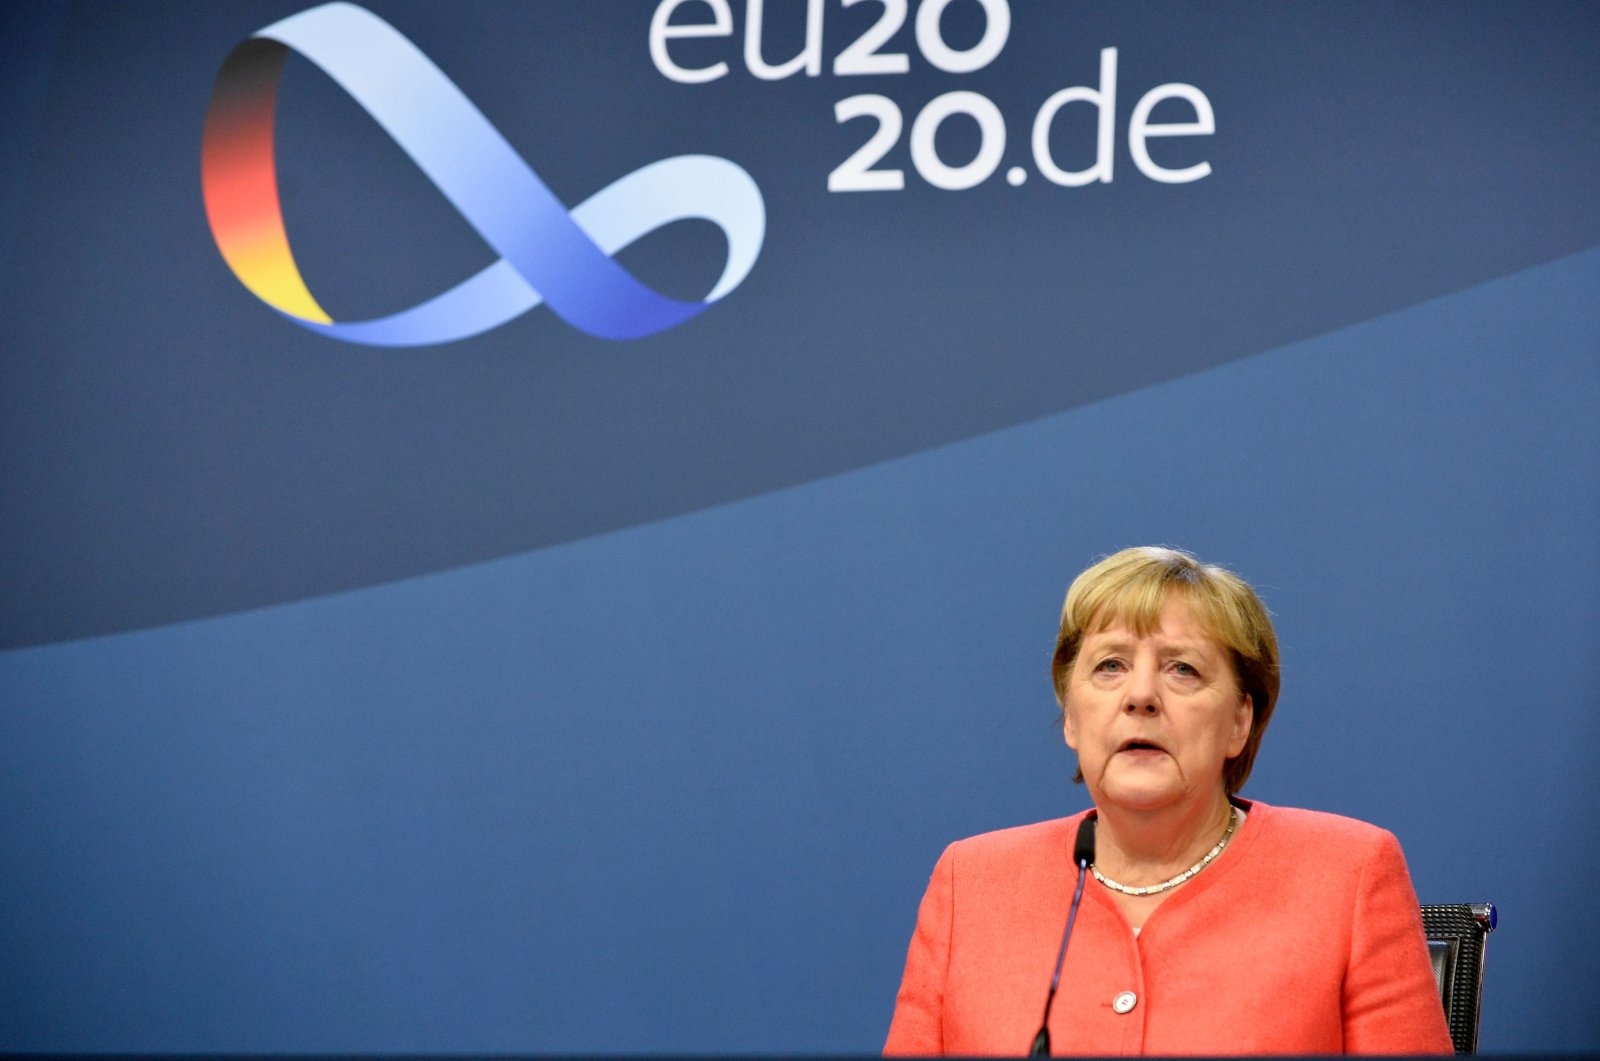 German Chancellor Angela Merkel gives a news conference on the second day of a European Union (EU) summit at the European Council building in Brussels, Belgium, Oct. 2, 2020. (AFP Photo)